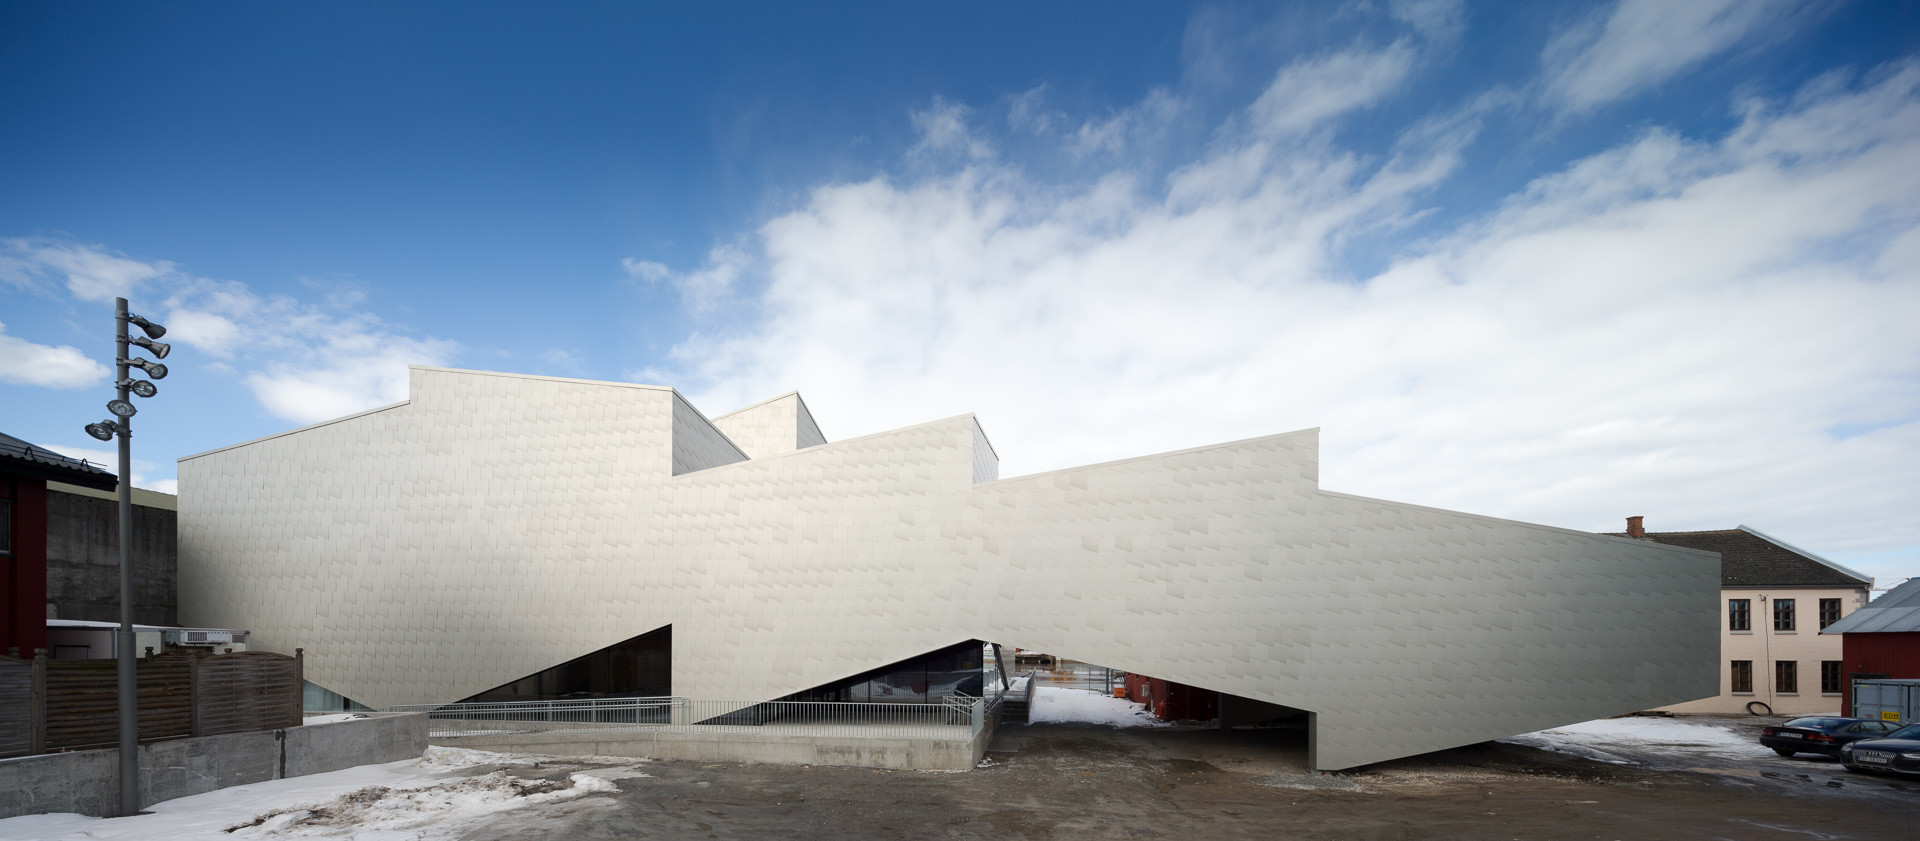 New Maritime Museum and Exploratorium / COBE Architects + Transform Architects, © Adam Mørk